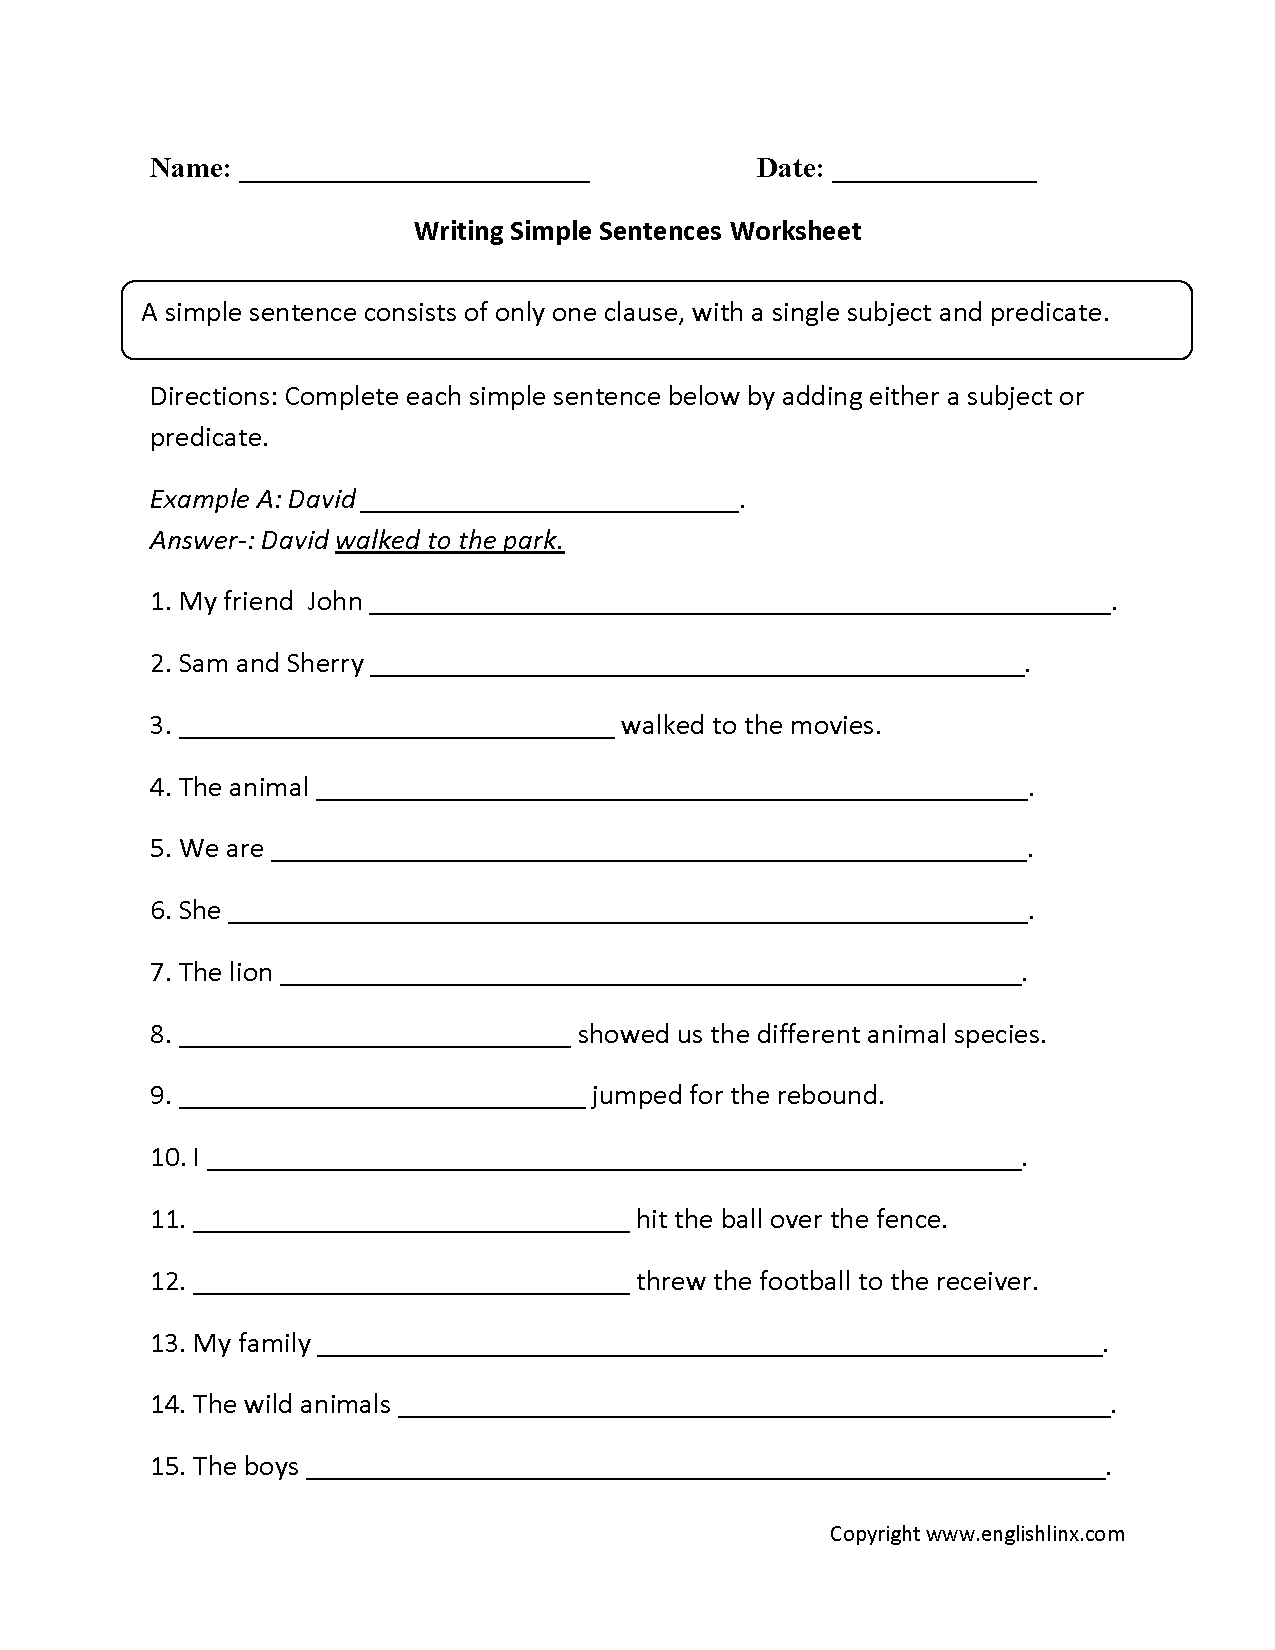 Worksheets 8th Grade Language Arts Worksheets sentences worksheets simple writing with worksheet